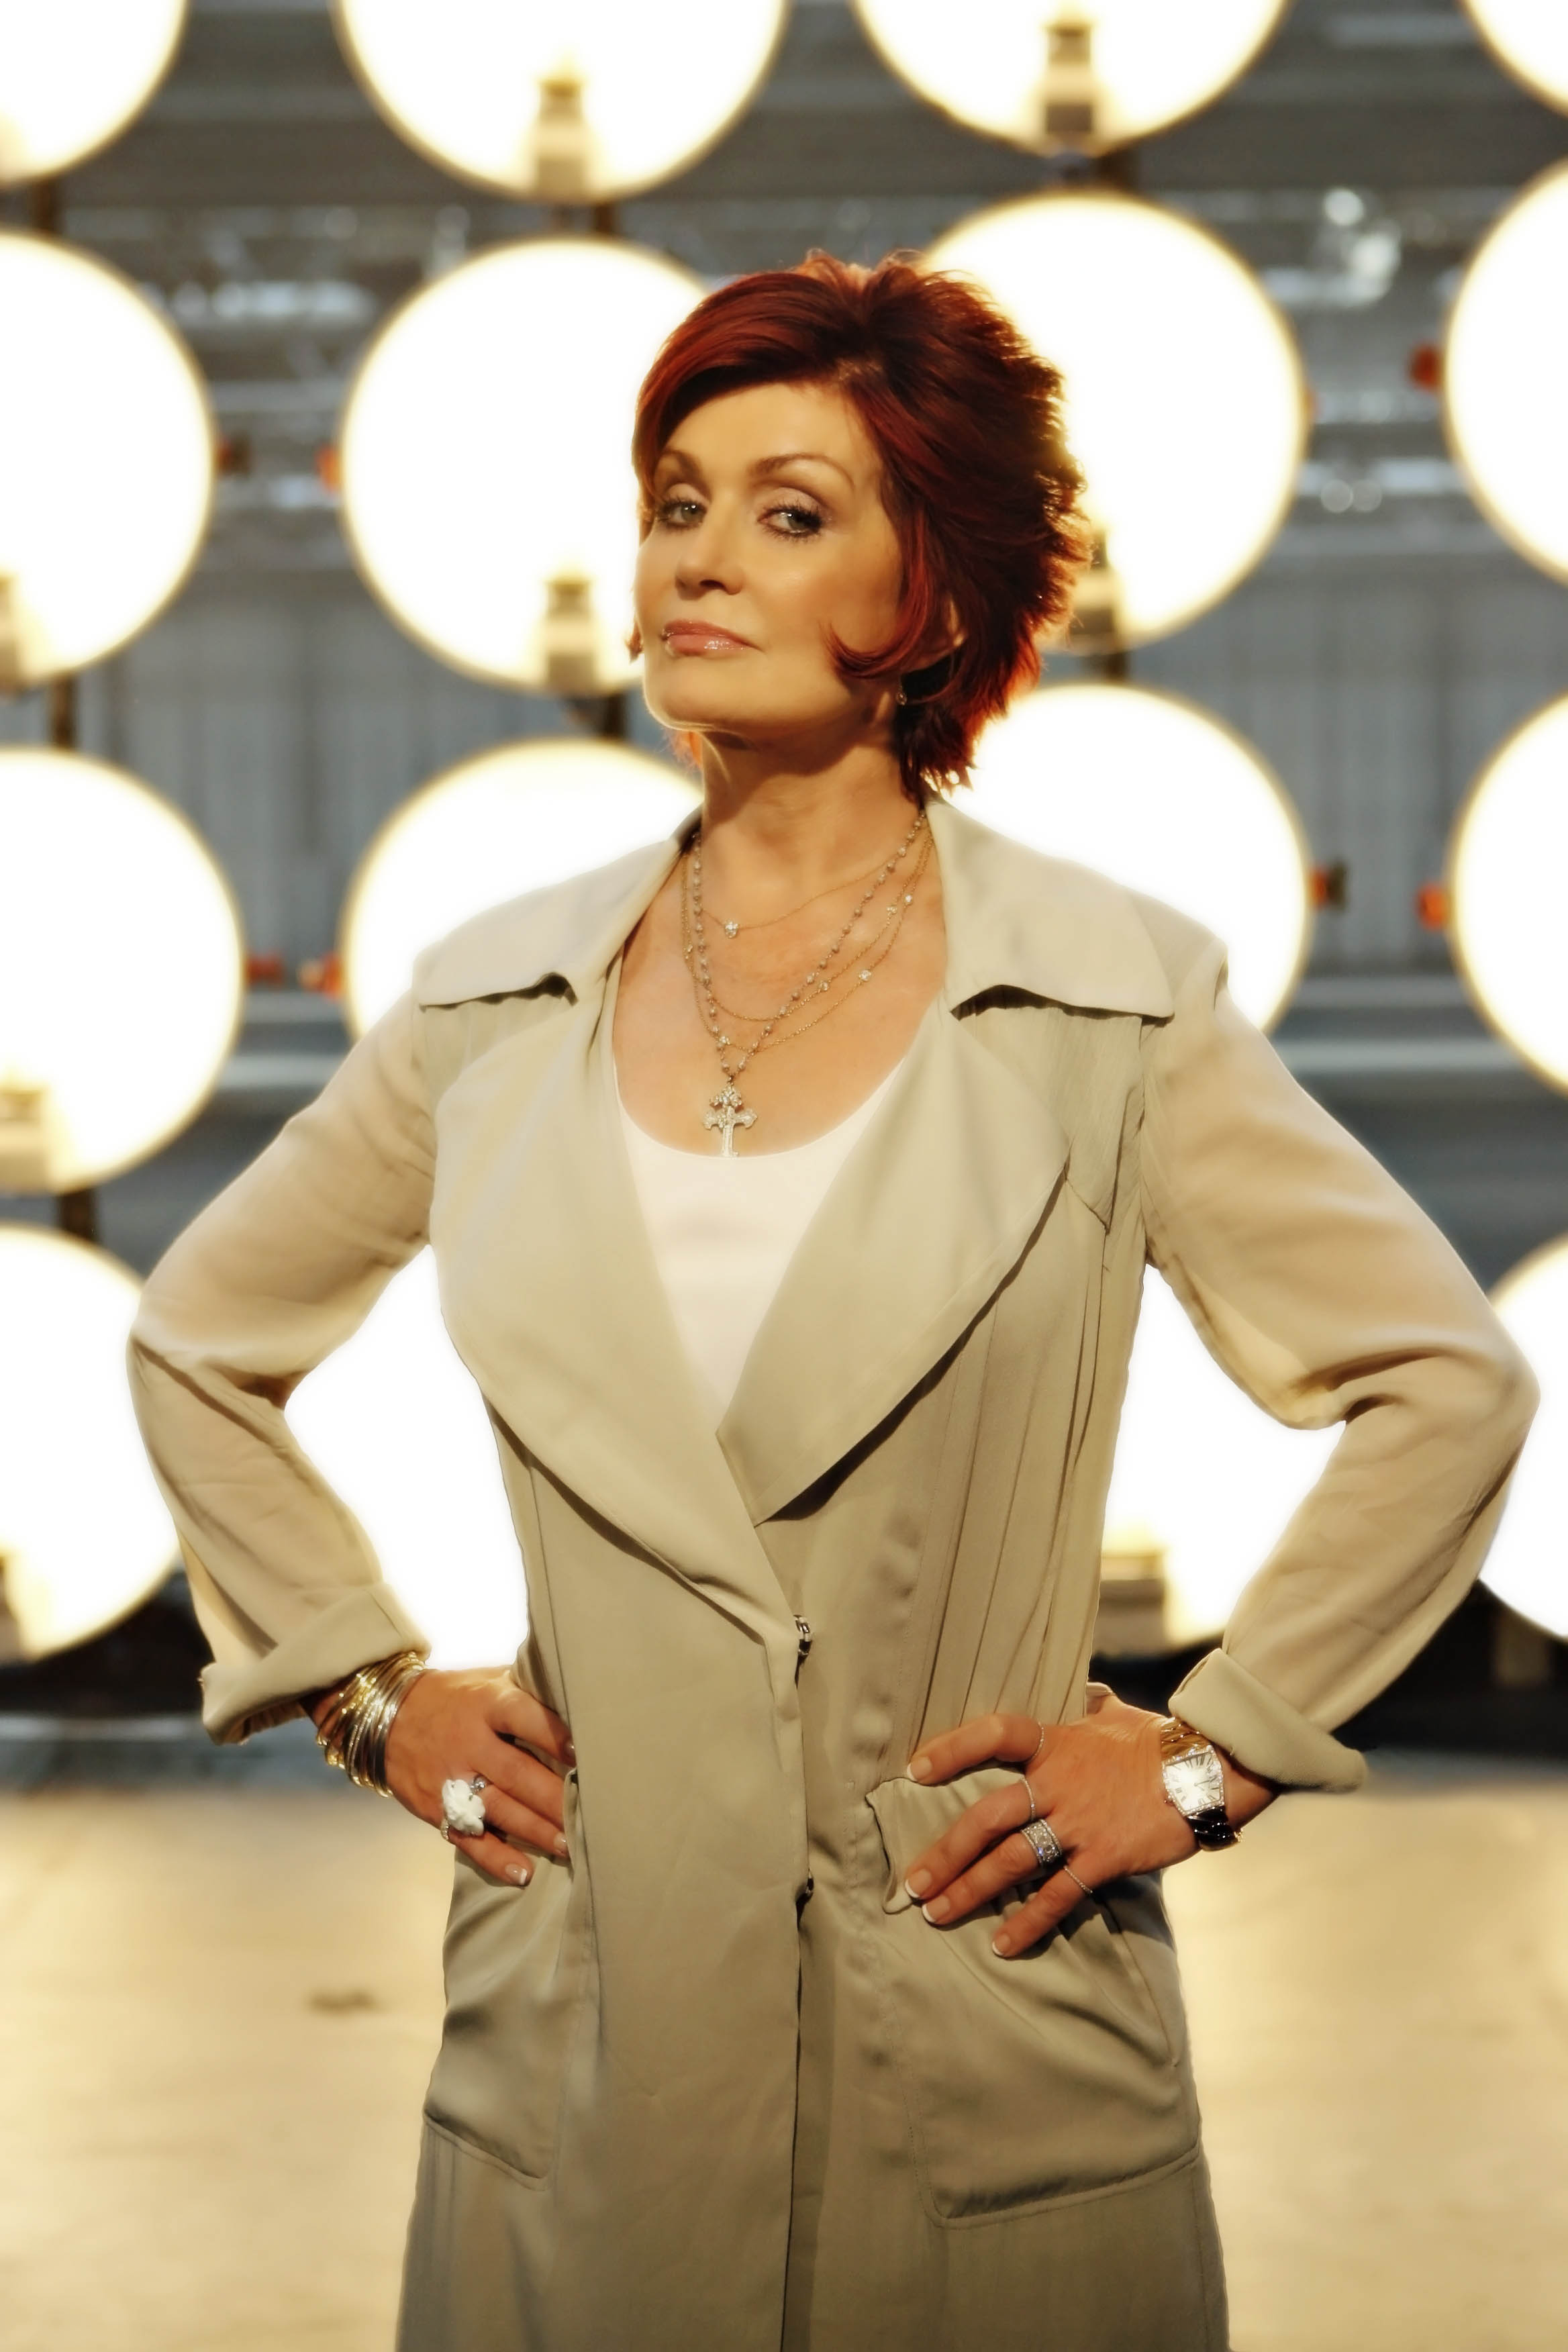 Sharon Osbourne allegedly attacked model